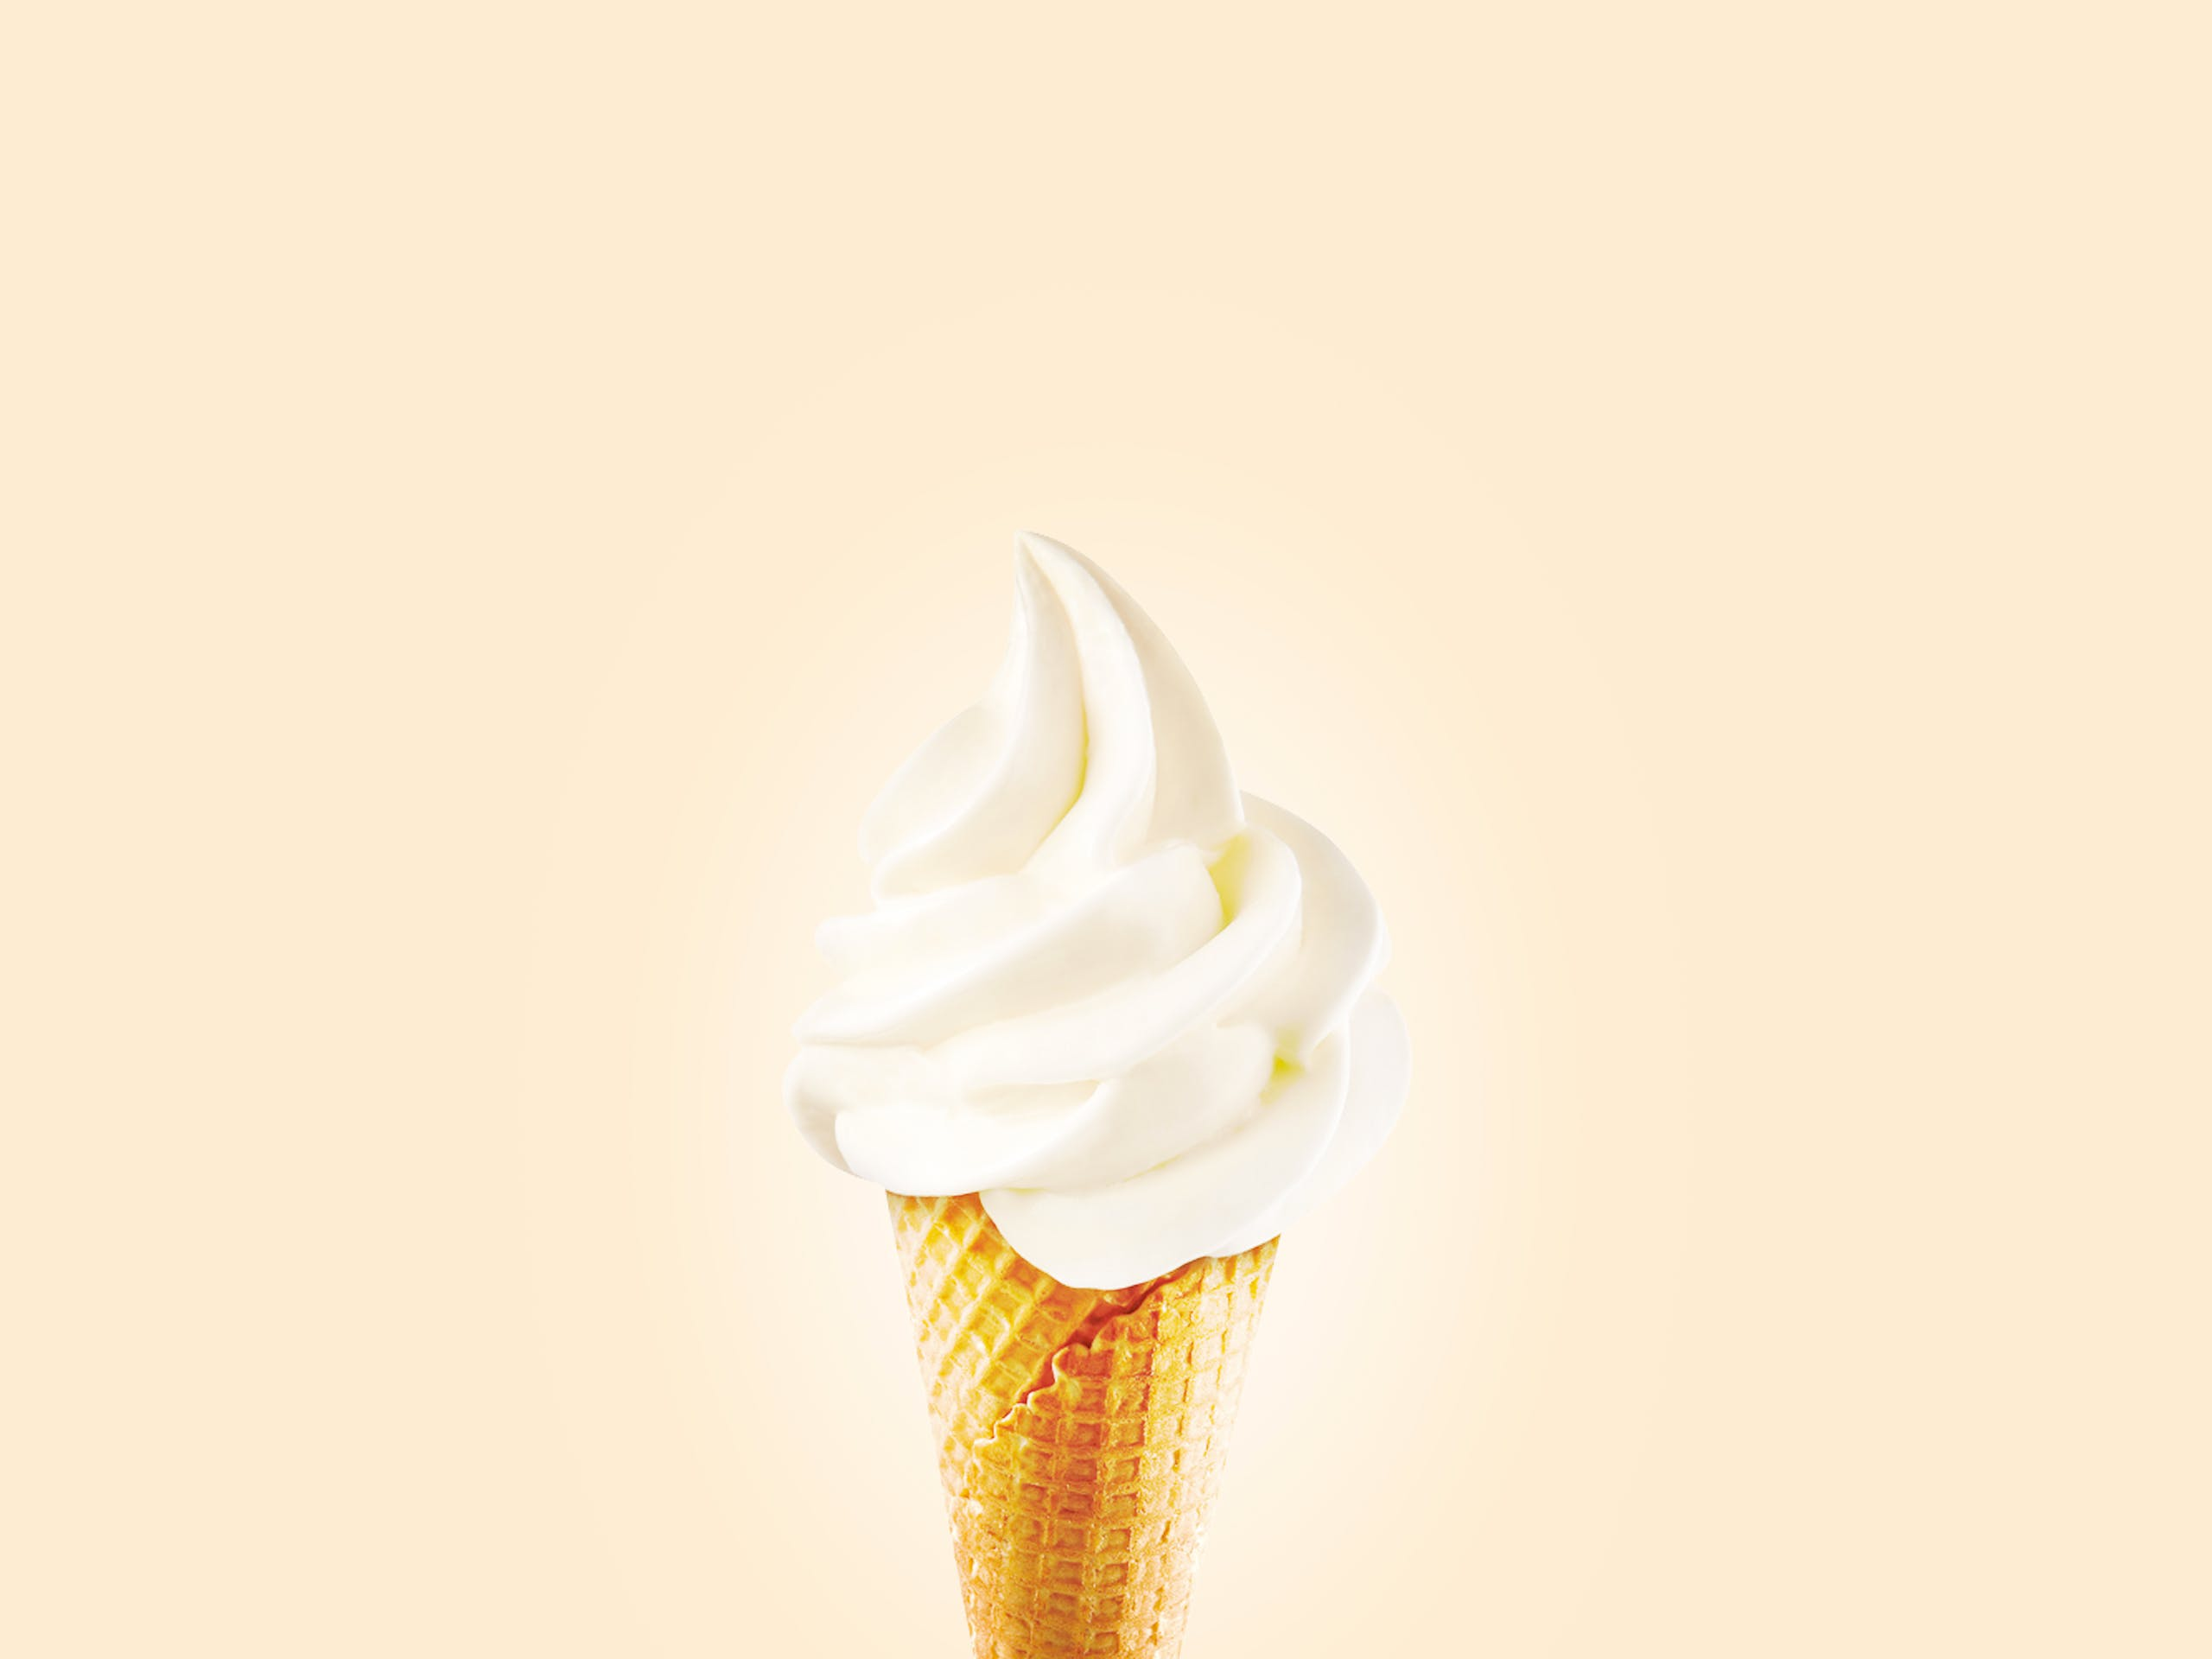 Cream Ice Cream in Cone